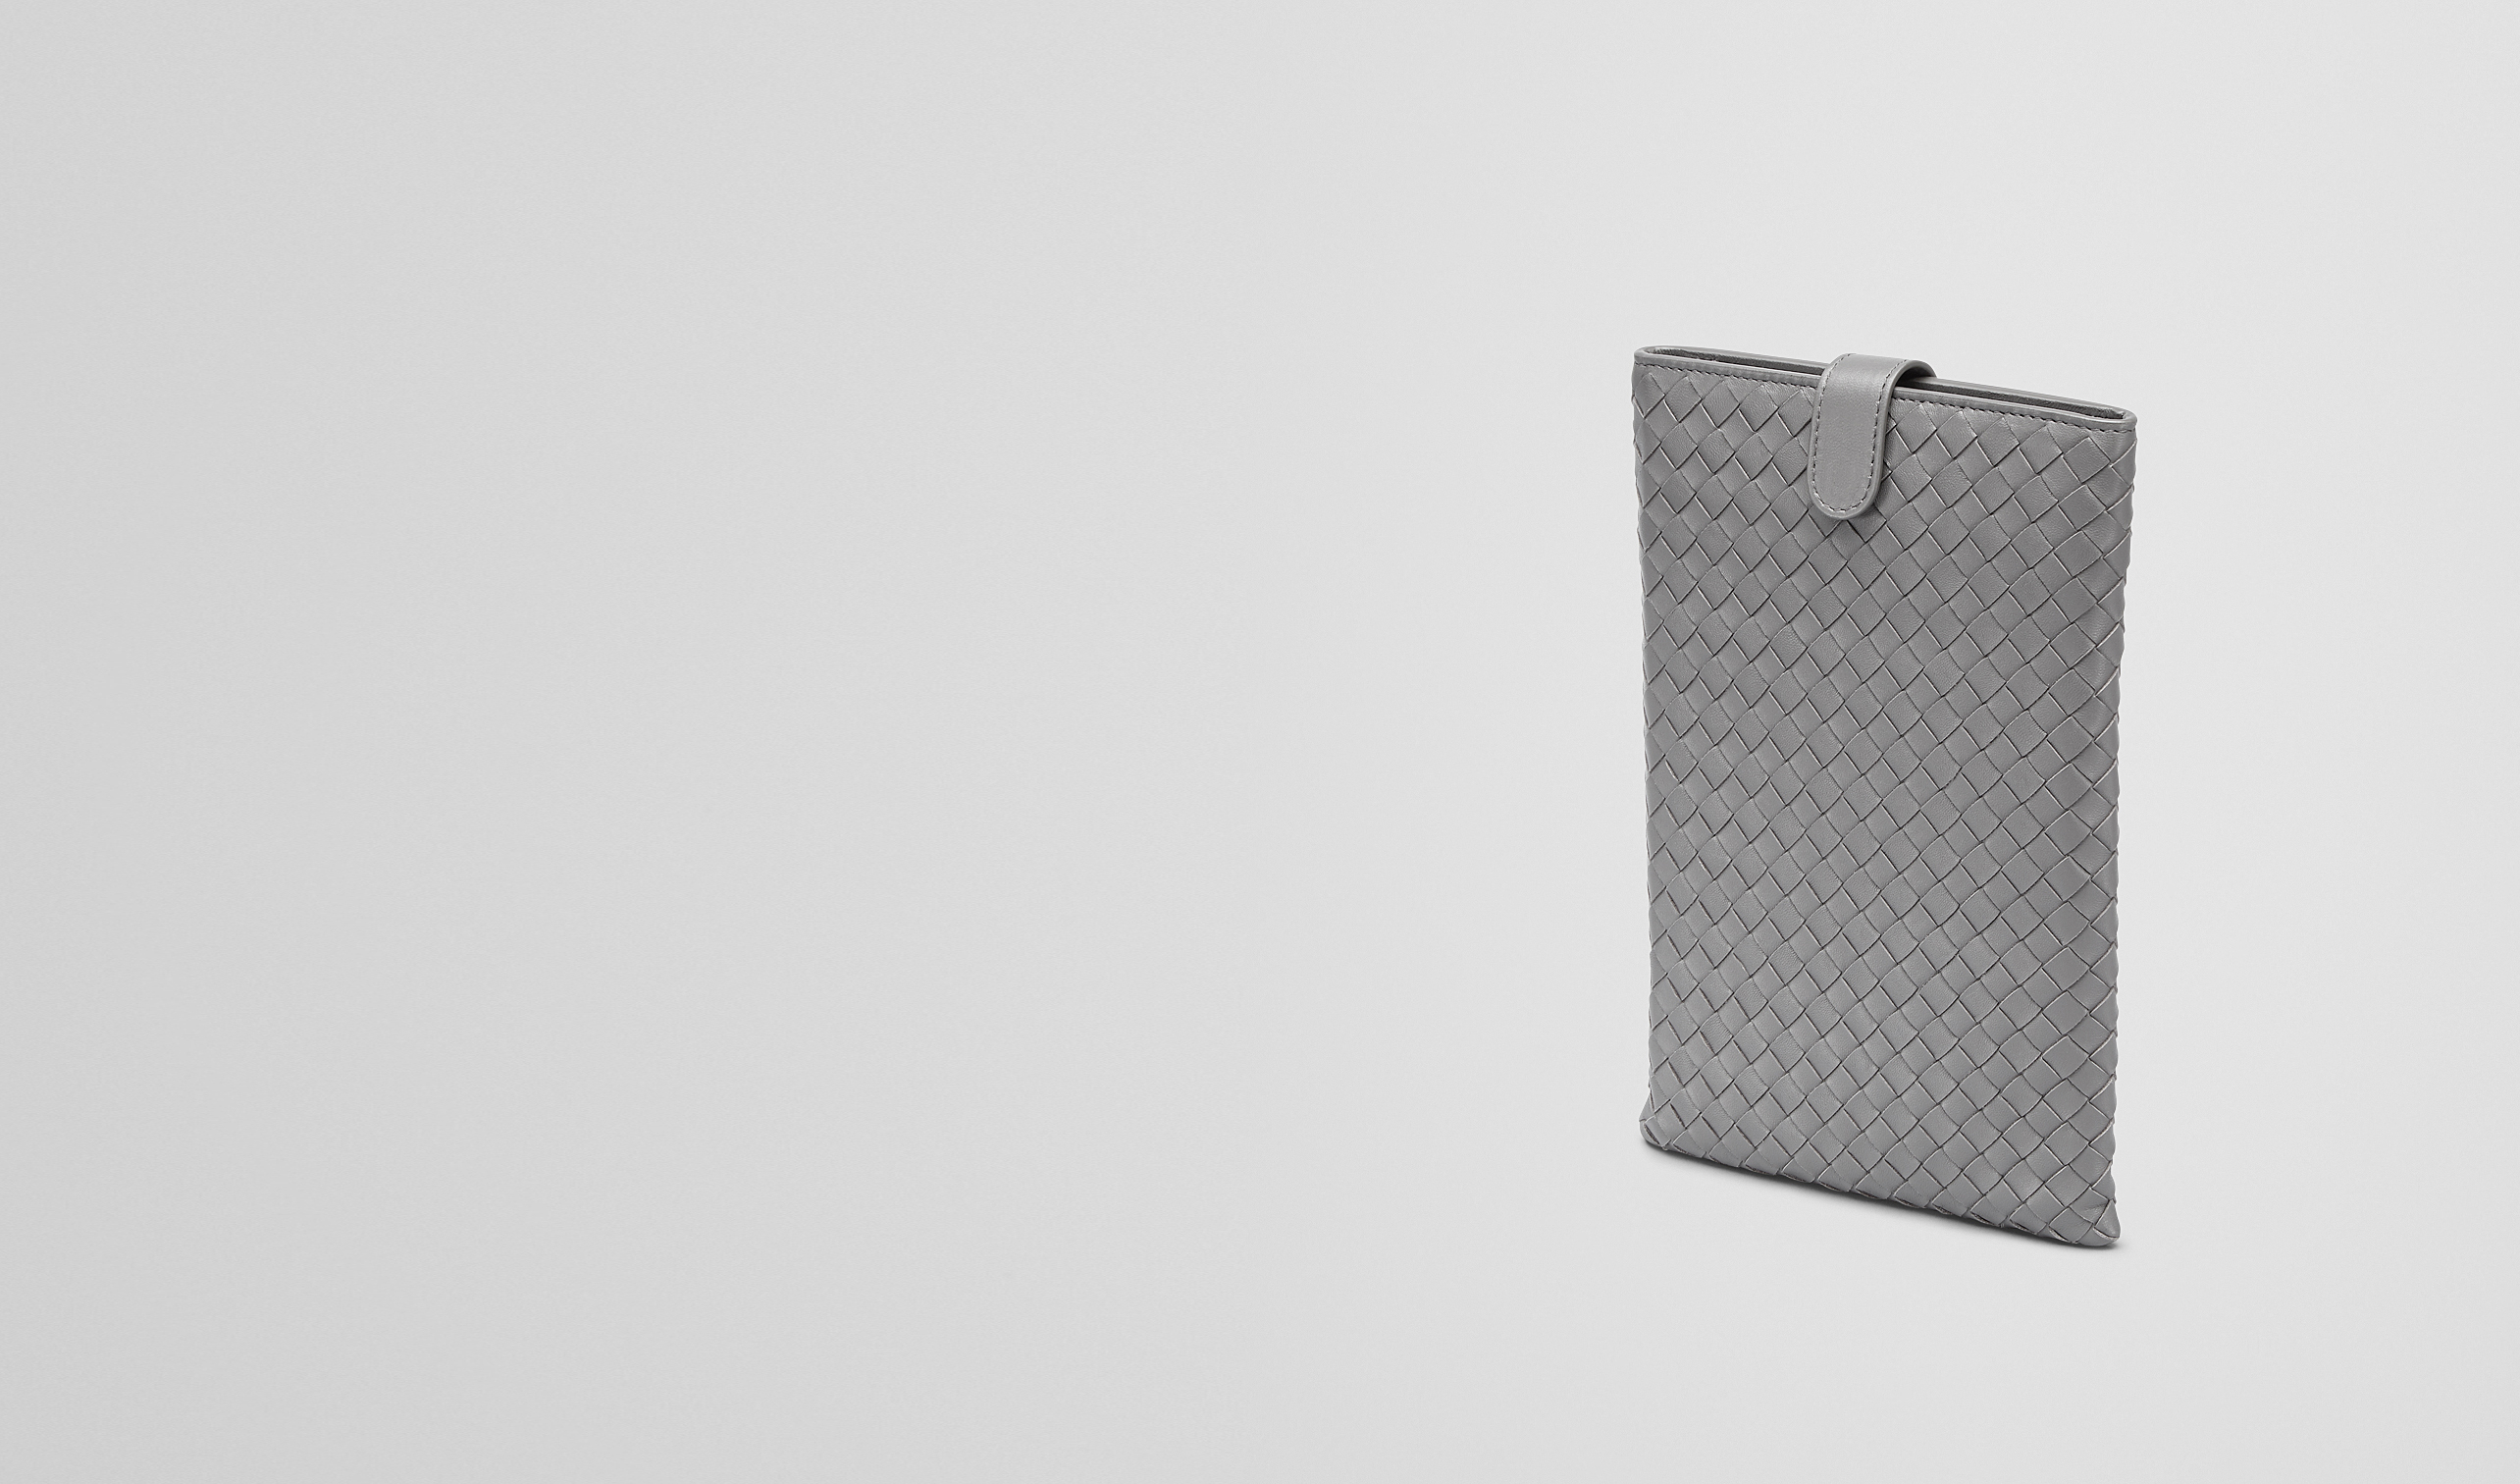 BOTTEGA VENETA Weiteres Leder Accessoire E IPAD MINI HÜLLE AUS NAPPALEDER INTRECCIATO NEW LIGHT GREY pl